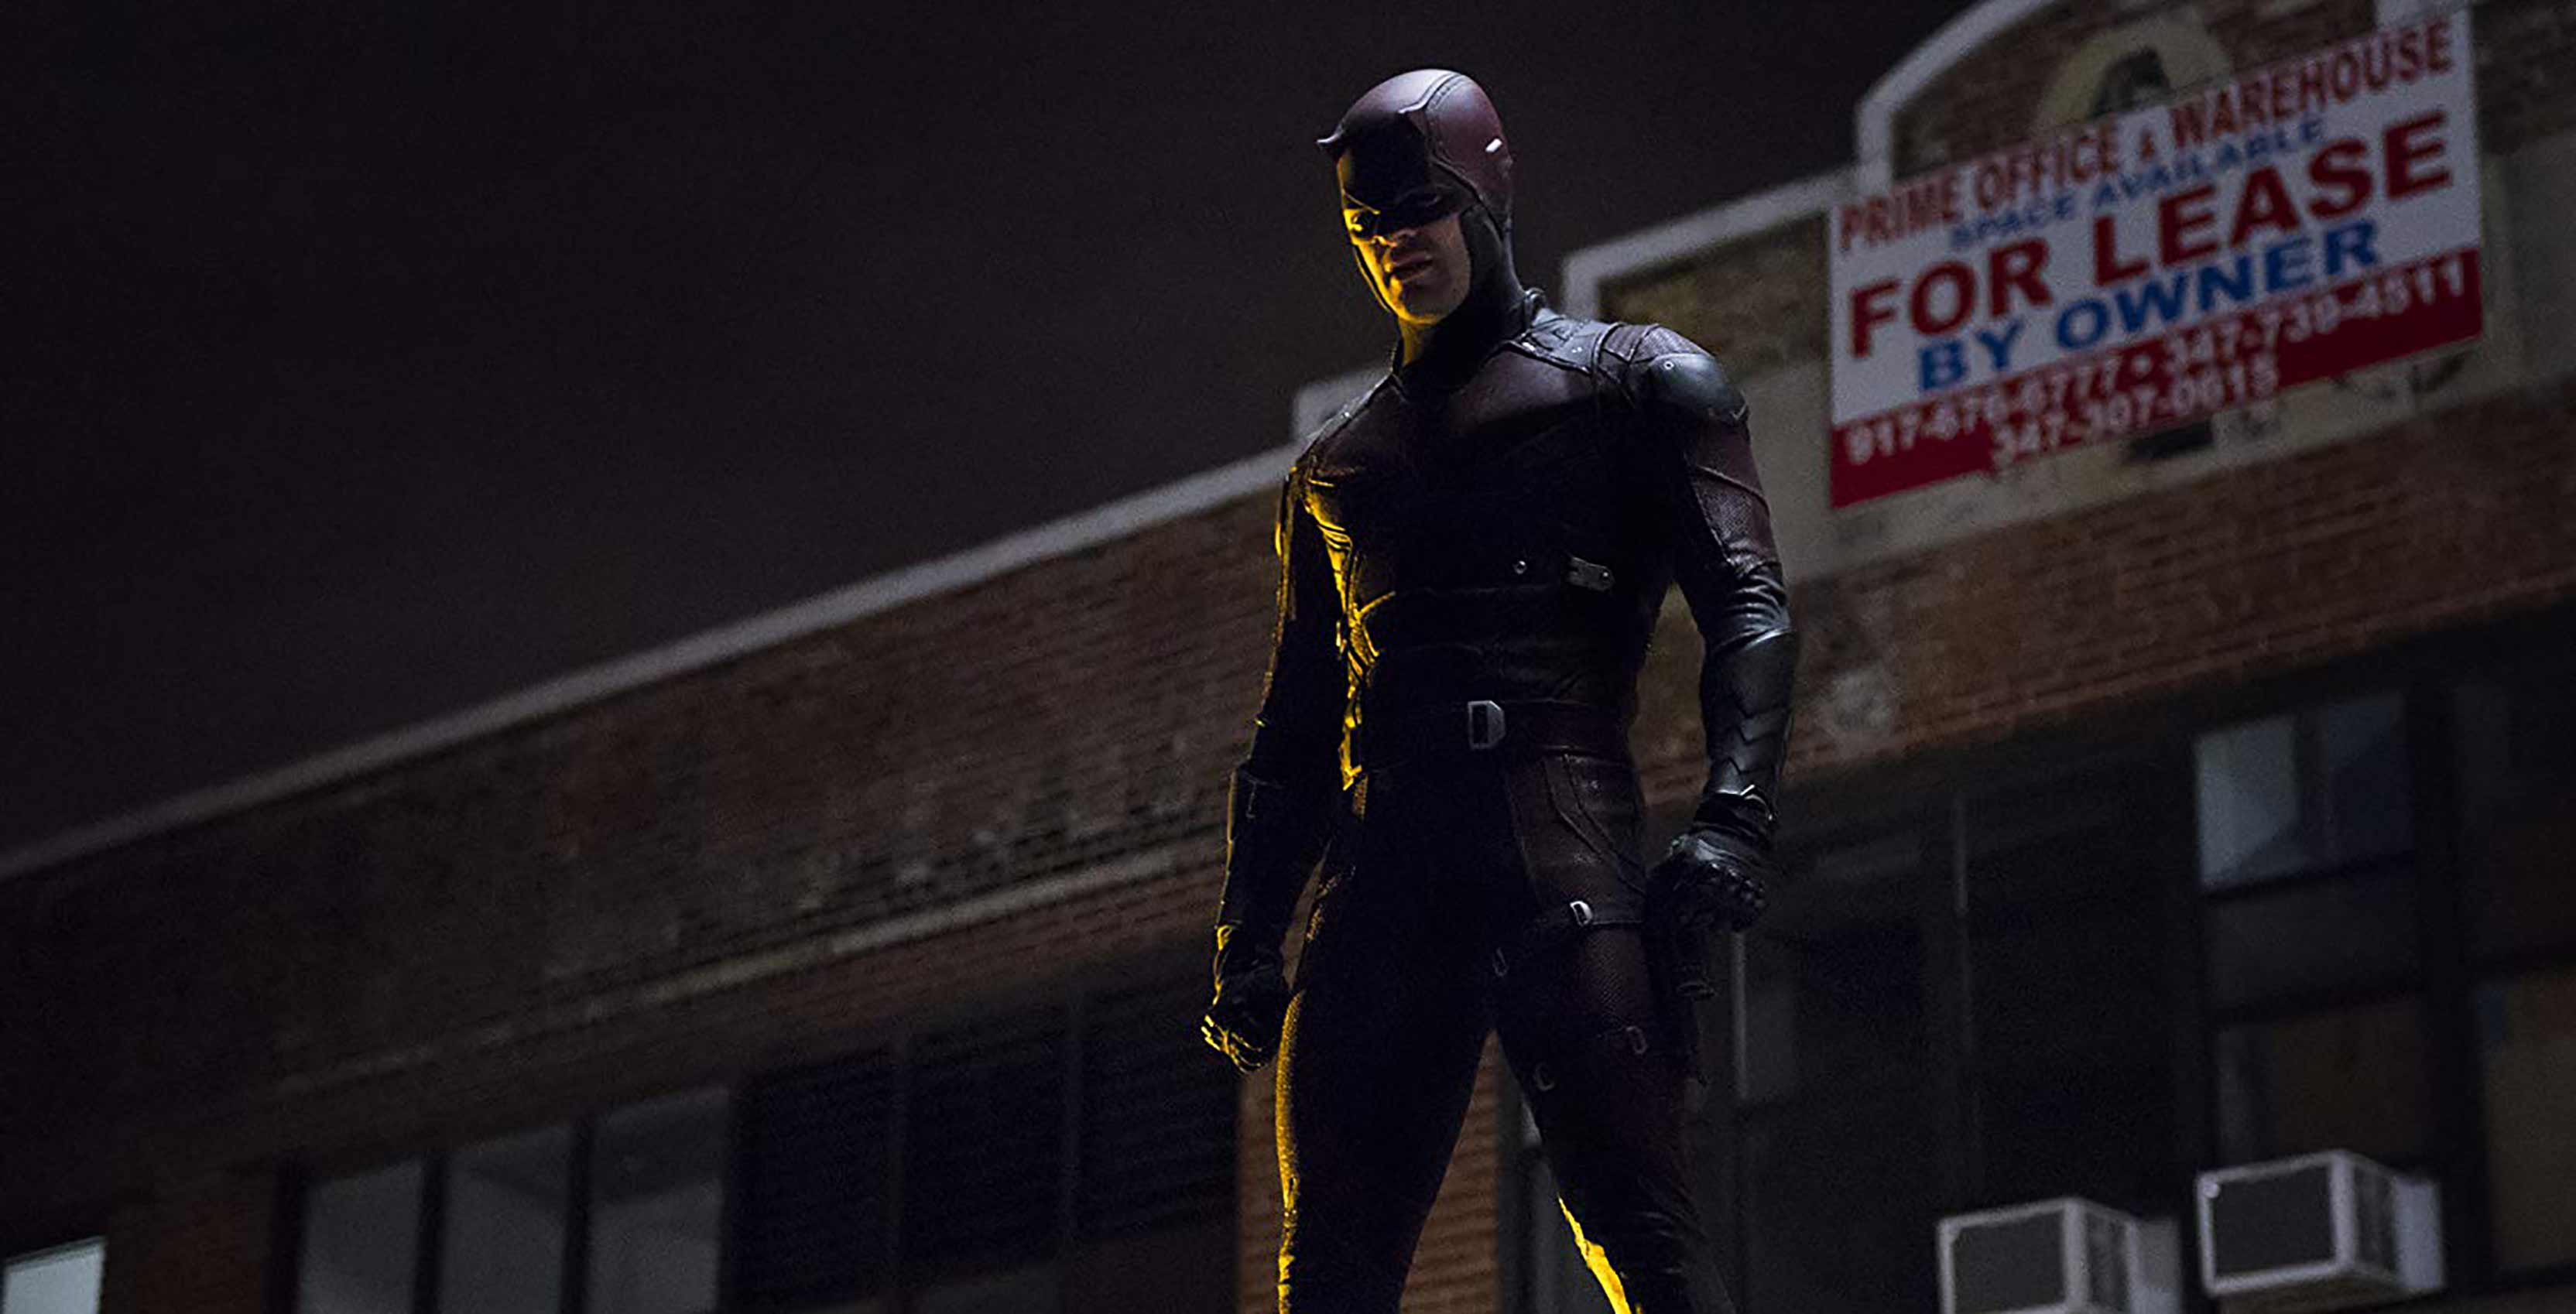 Daredevil Season 3 Is Coming To Netflix On October 19